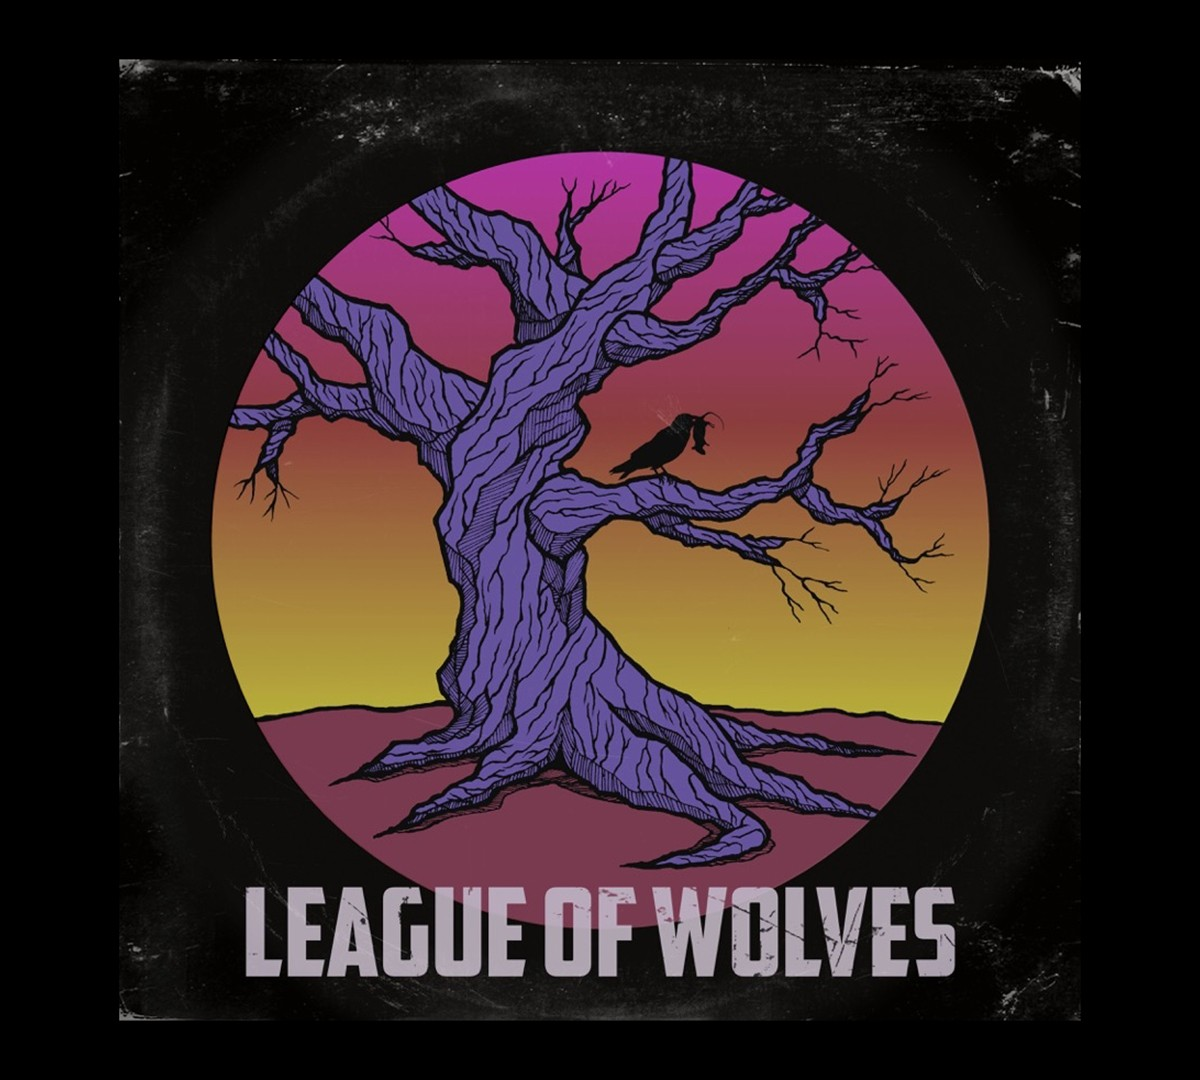 Former Sheepdog Lends Credibility To League Of Wolves